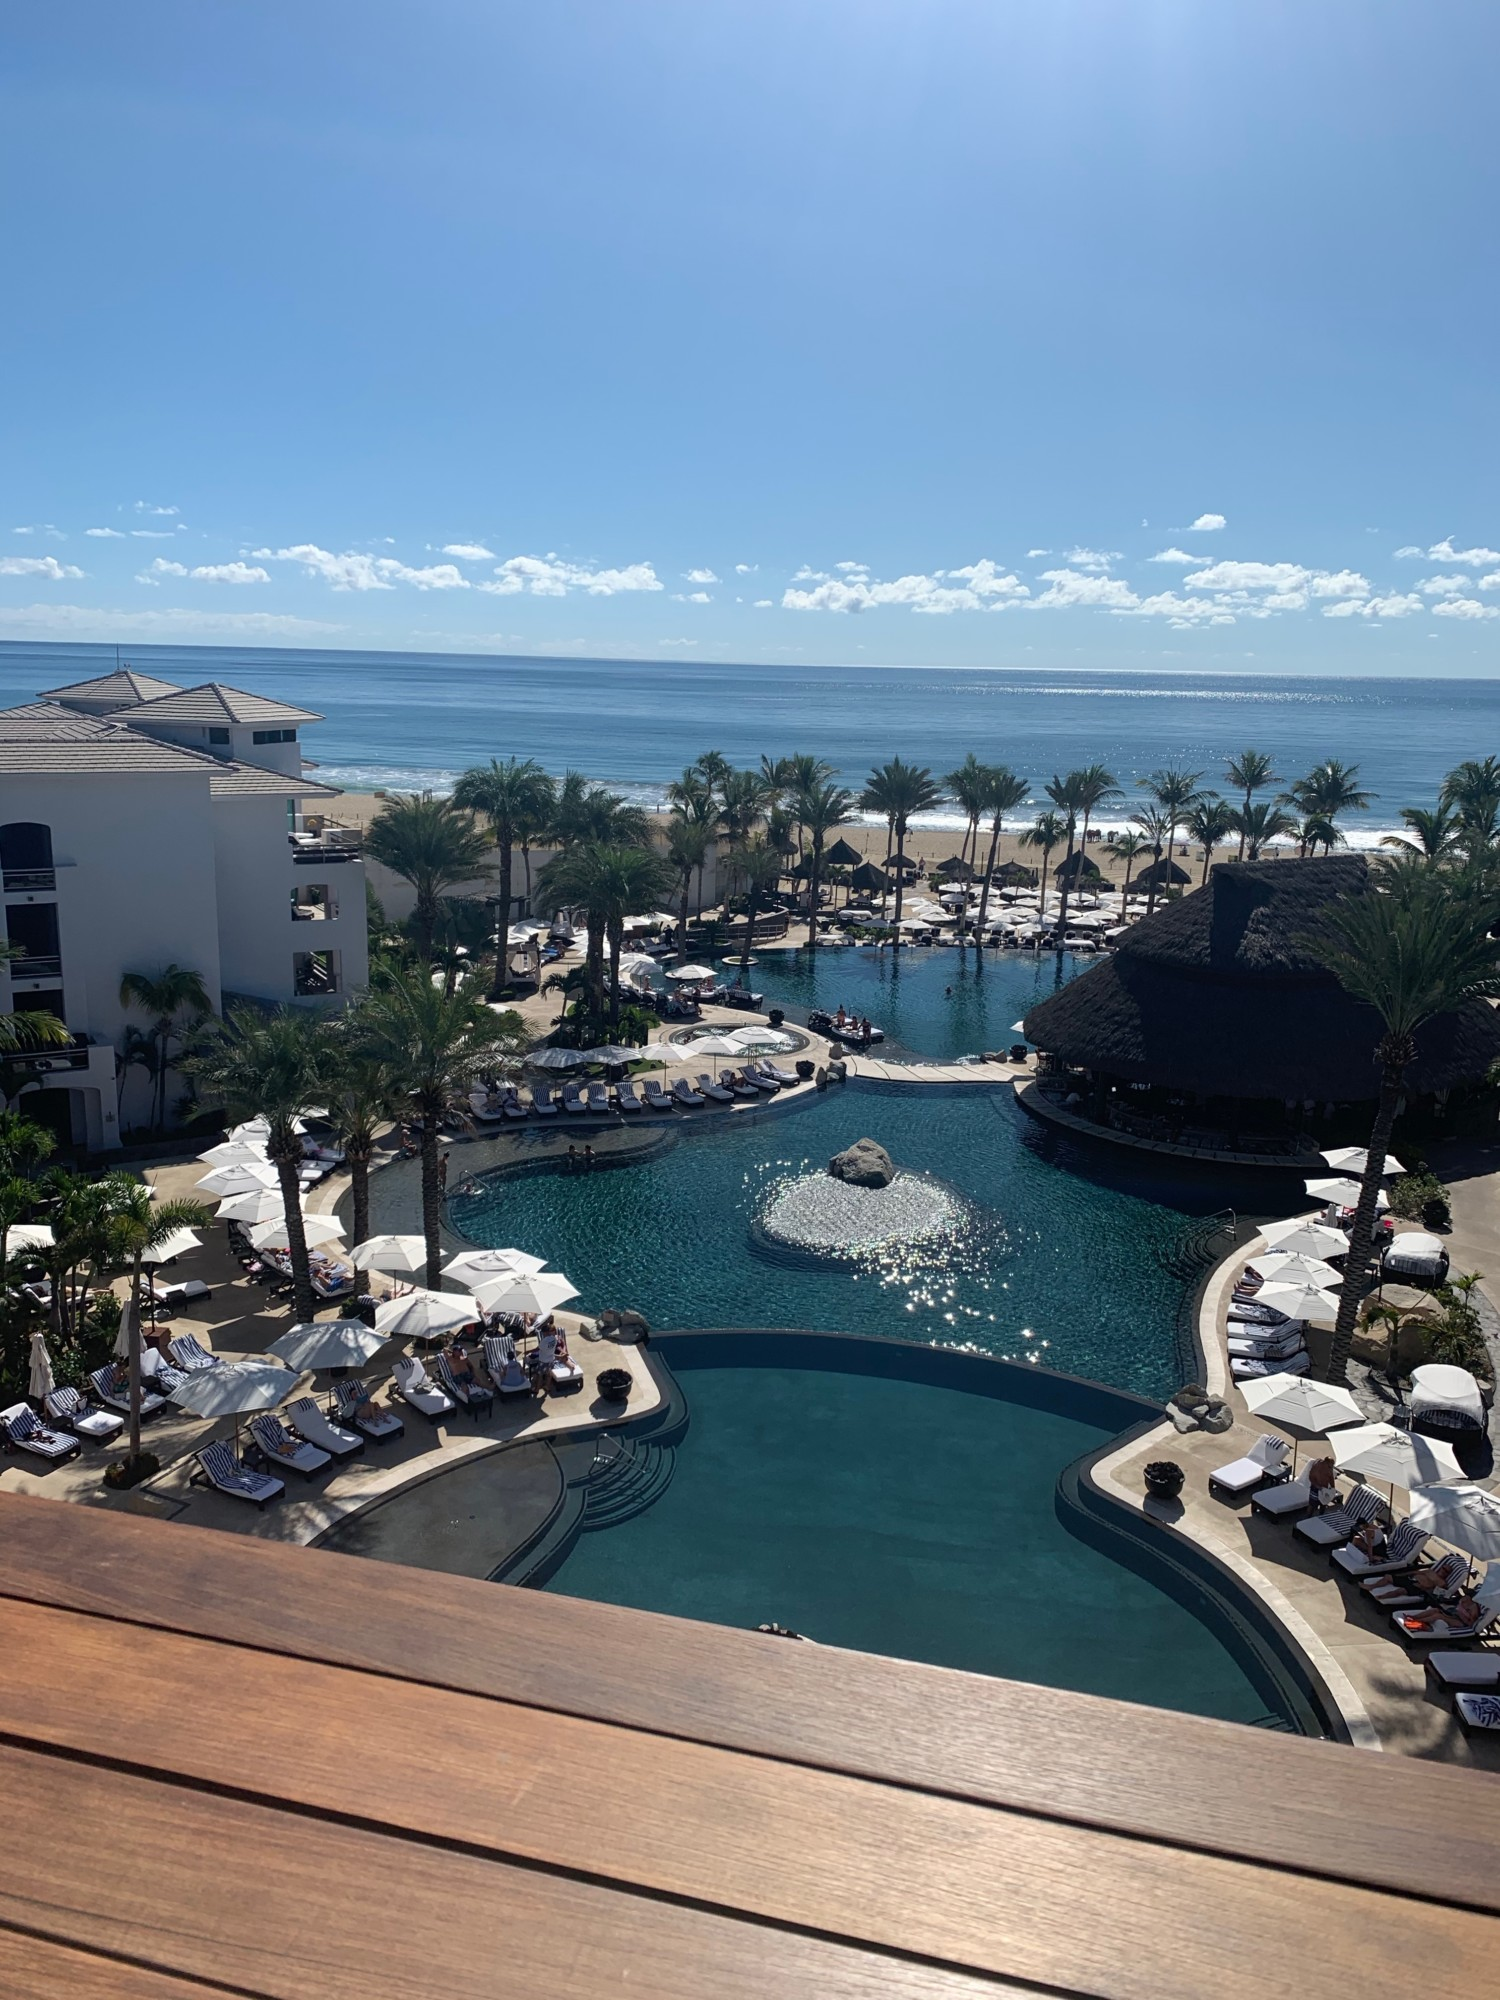 Planning your Wedding in Beautiful Cabo San Lucas, Mexico